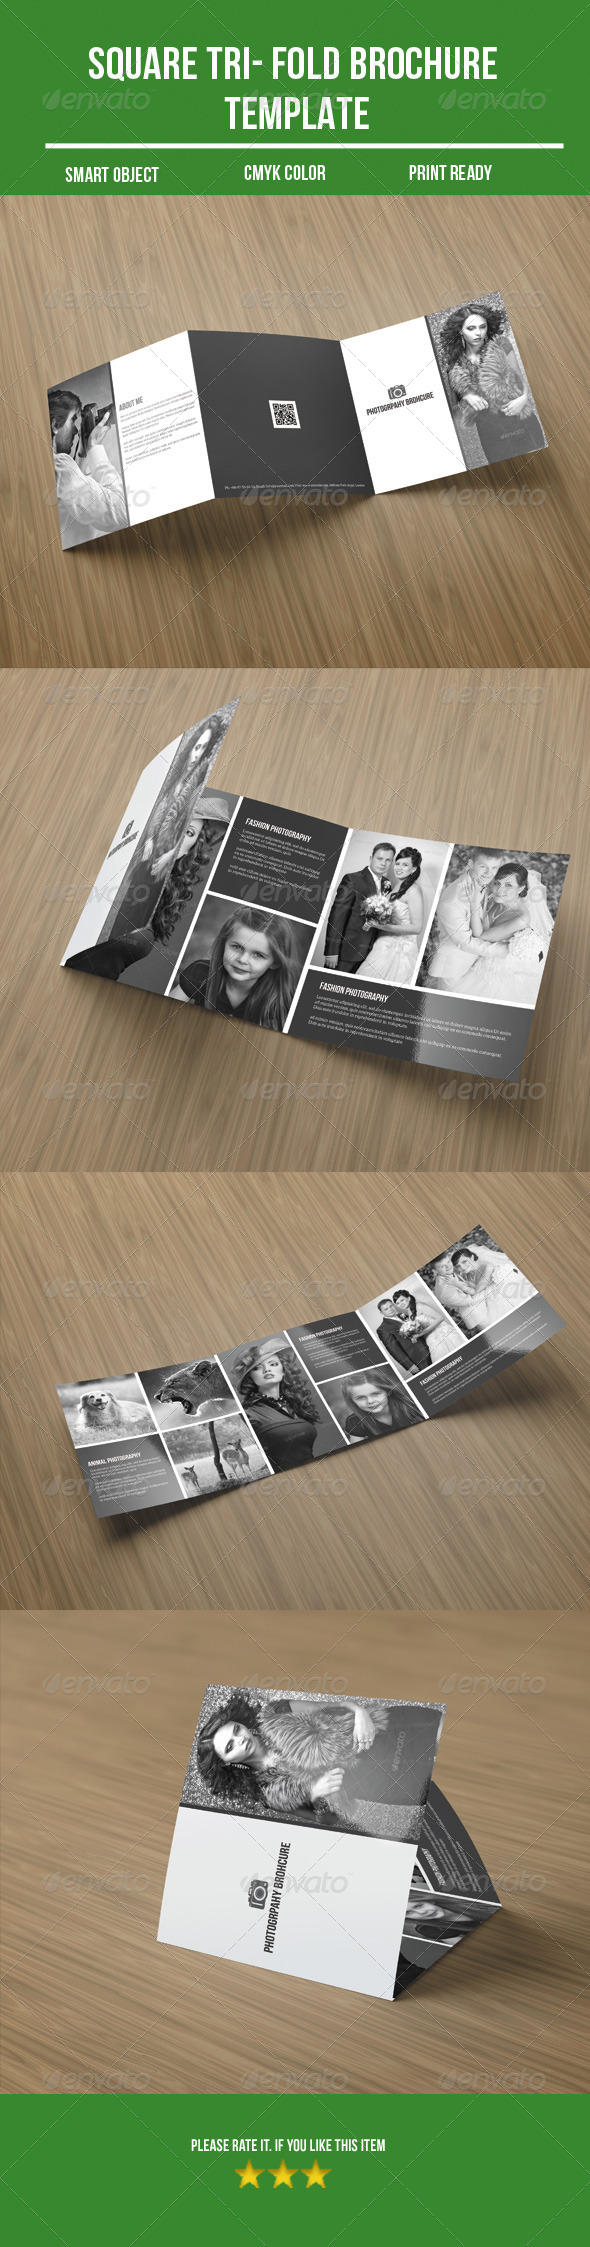 GraphicRiver Square Tri- fold Photography Brochure 8561824